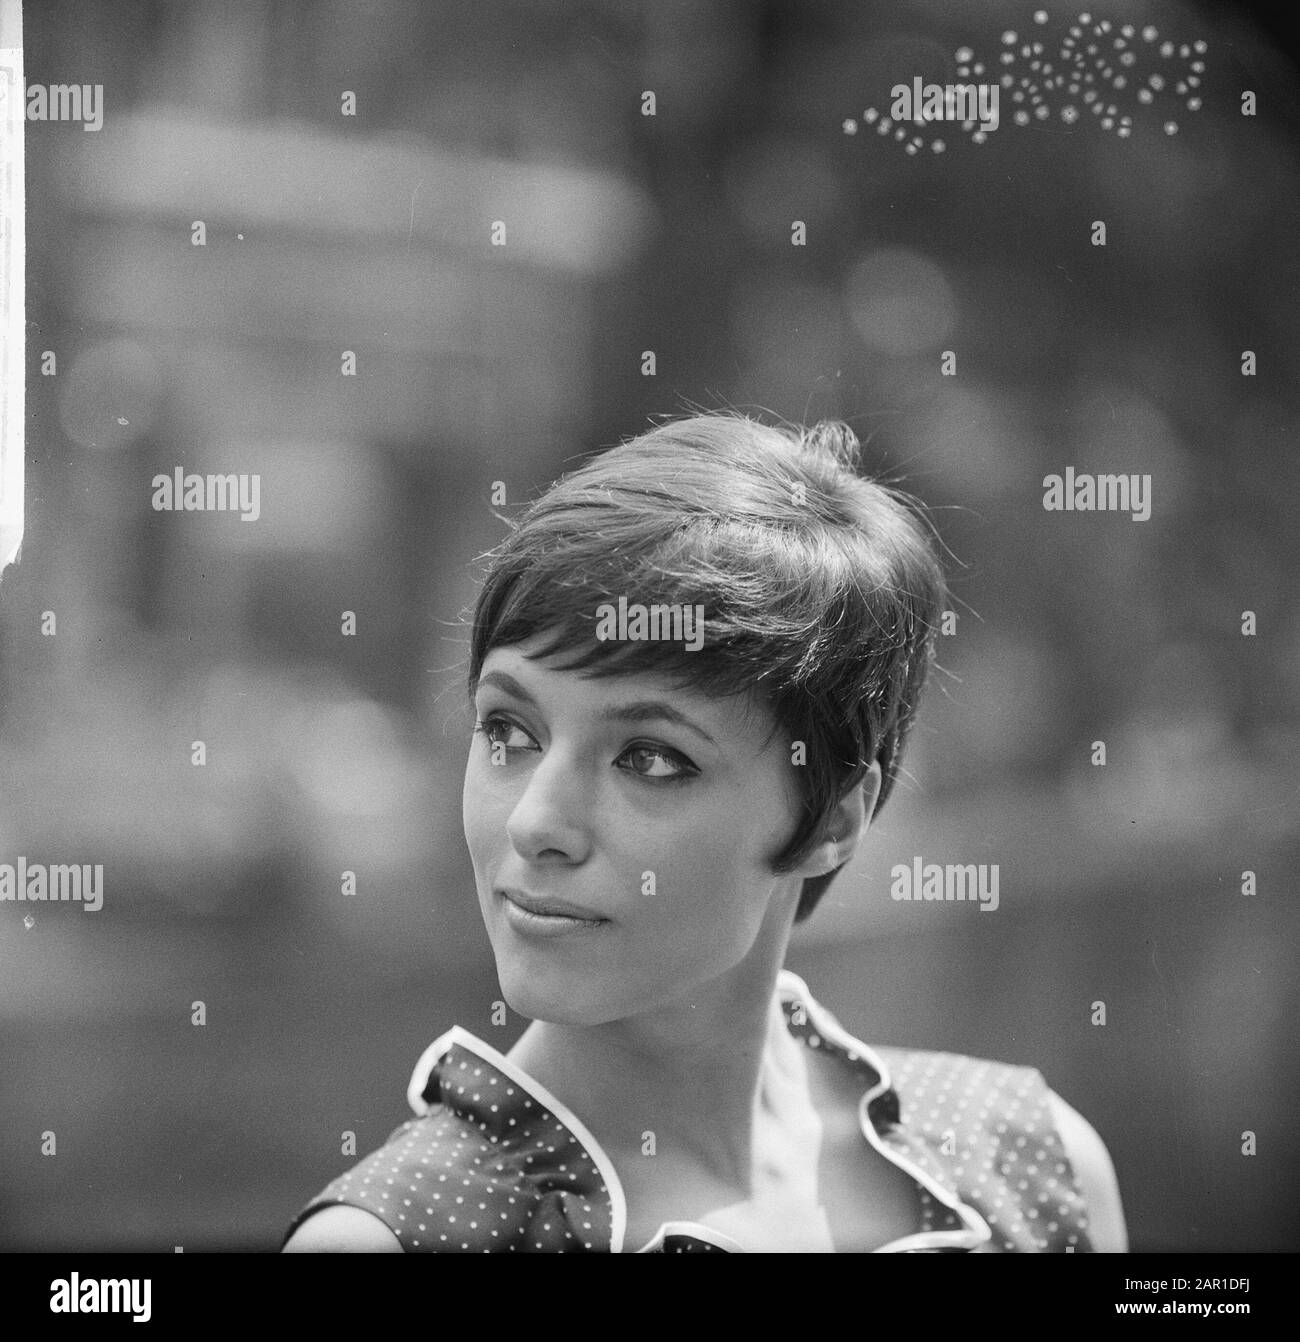 Hairstyle Tendens 1966 By Women S Hairdresser Mario Short Haircut The Short Women S Haircut Date 23 July 1965 Keywords Hairstyles Stock Photo Alamy